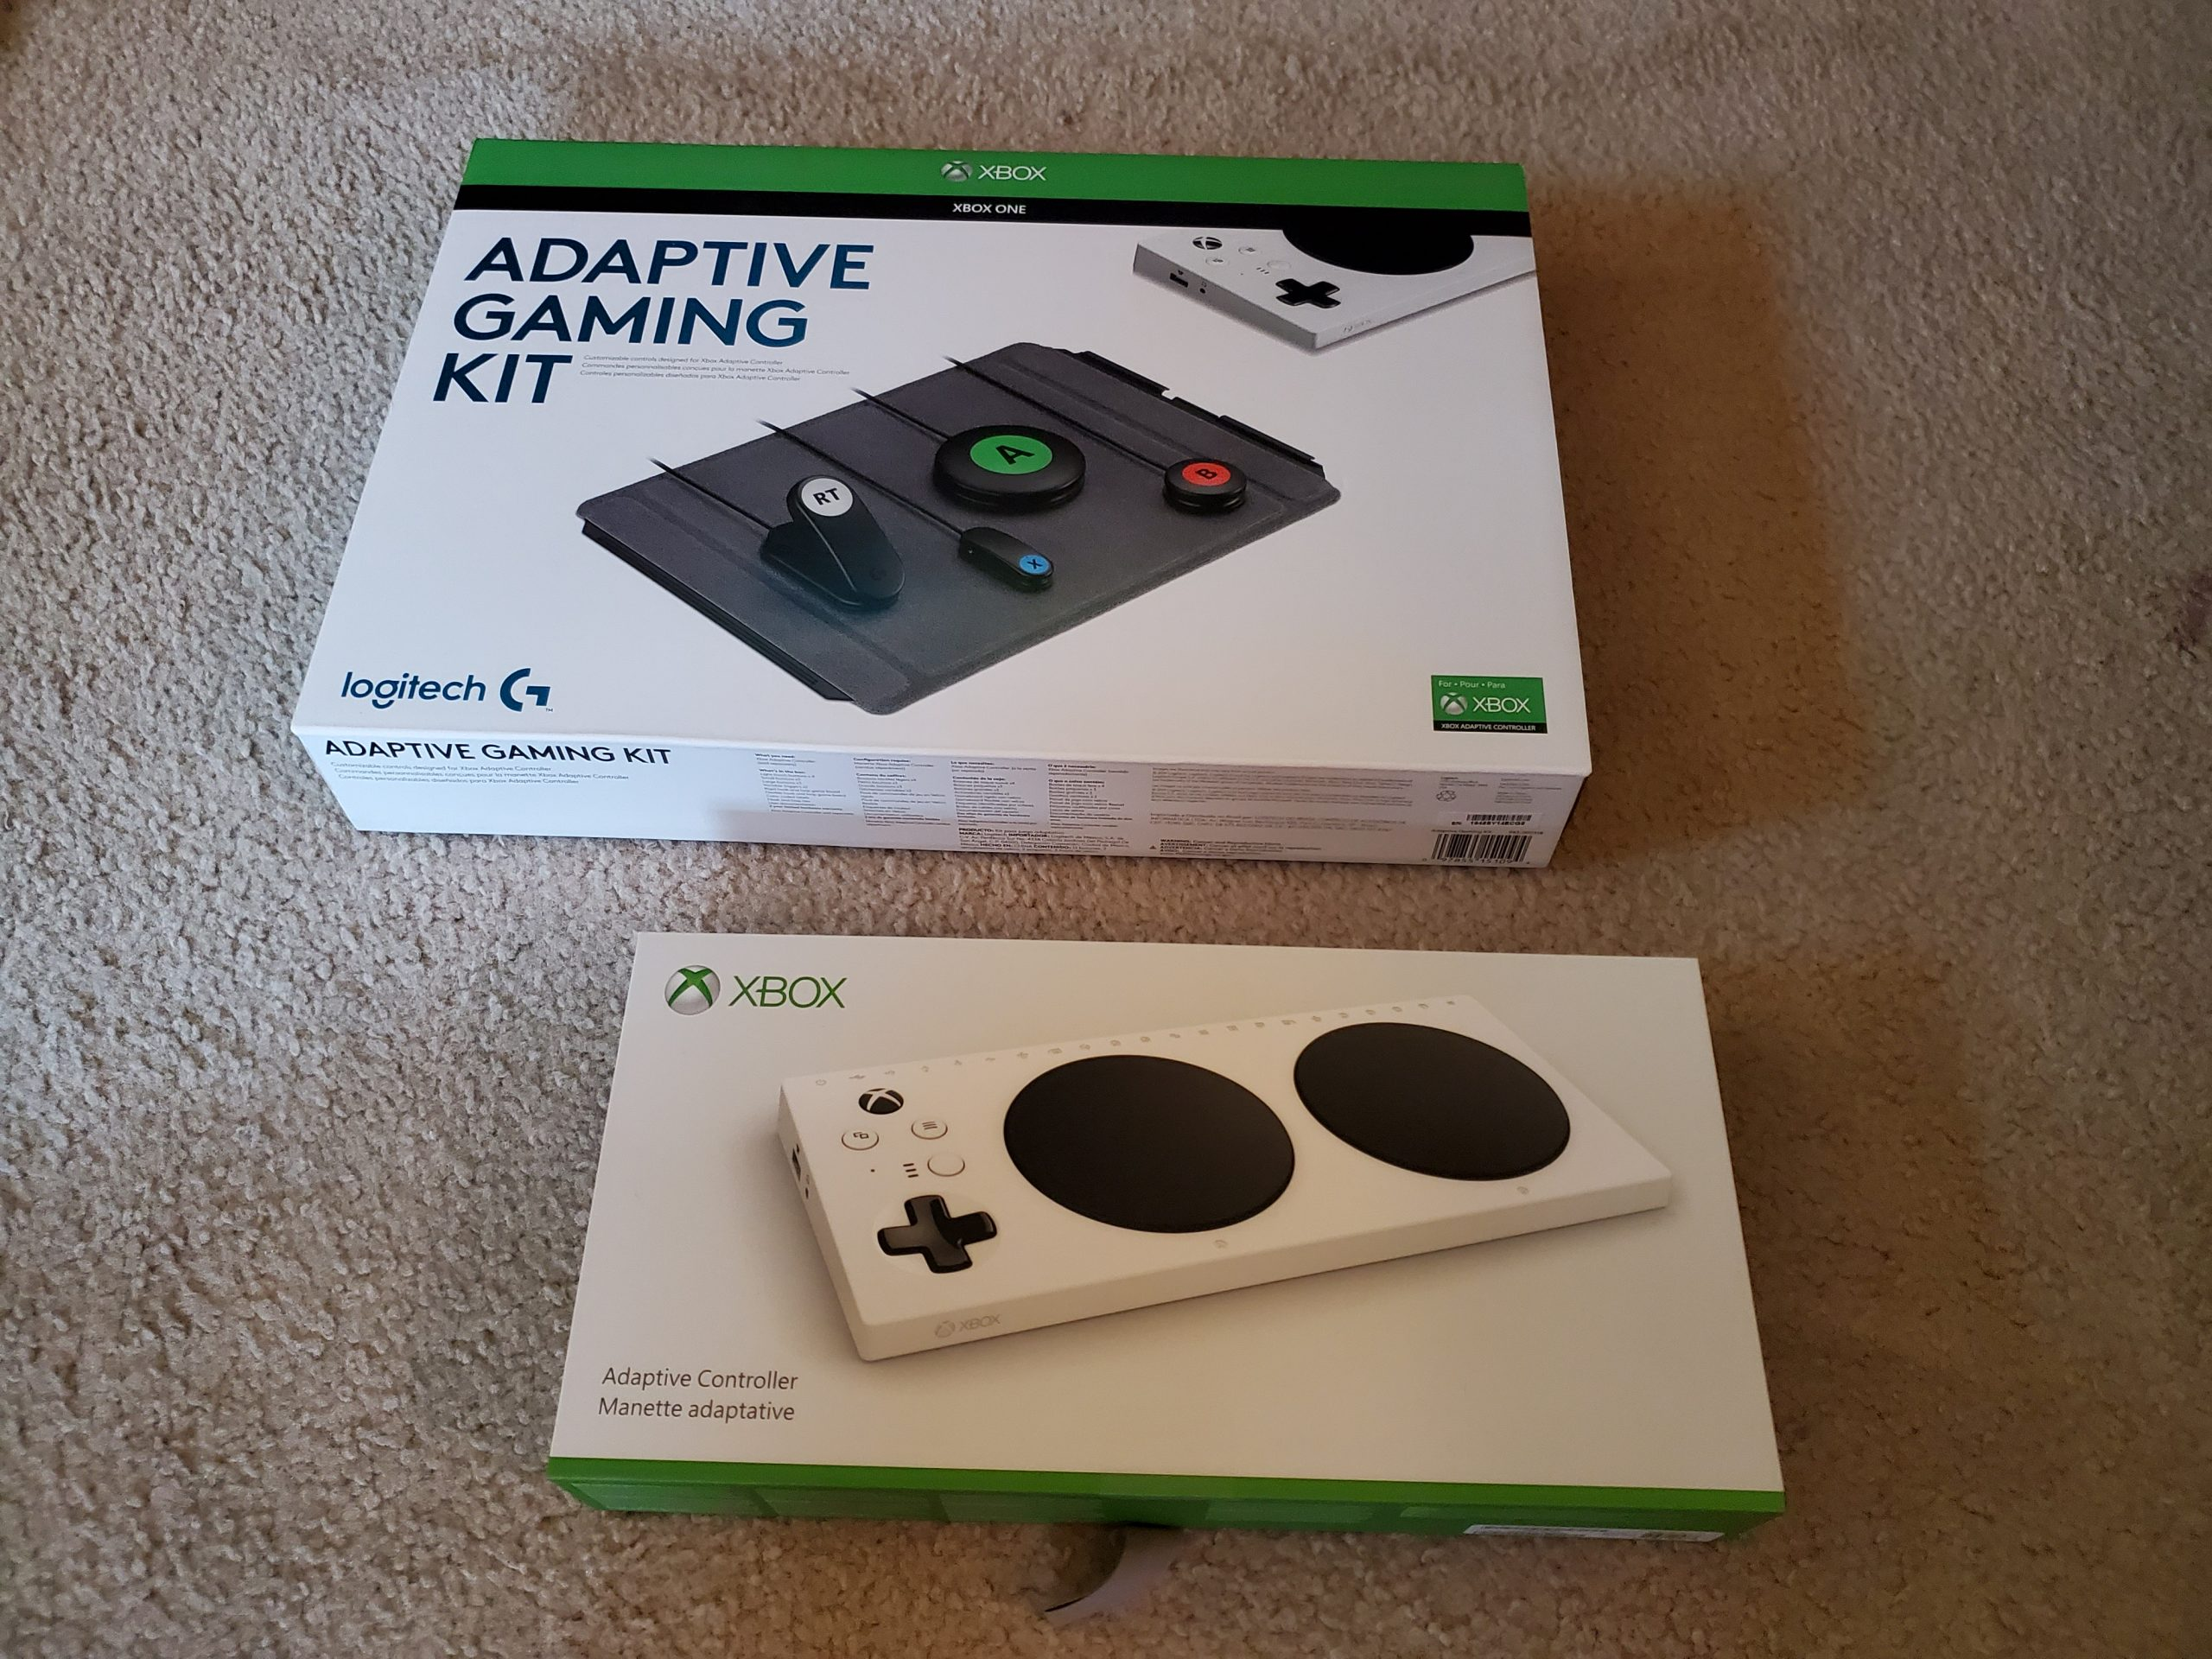 Accessible Gaming: The Xbox Adaptive Controller